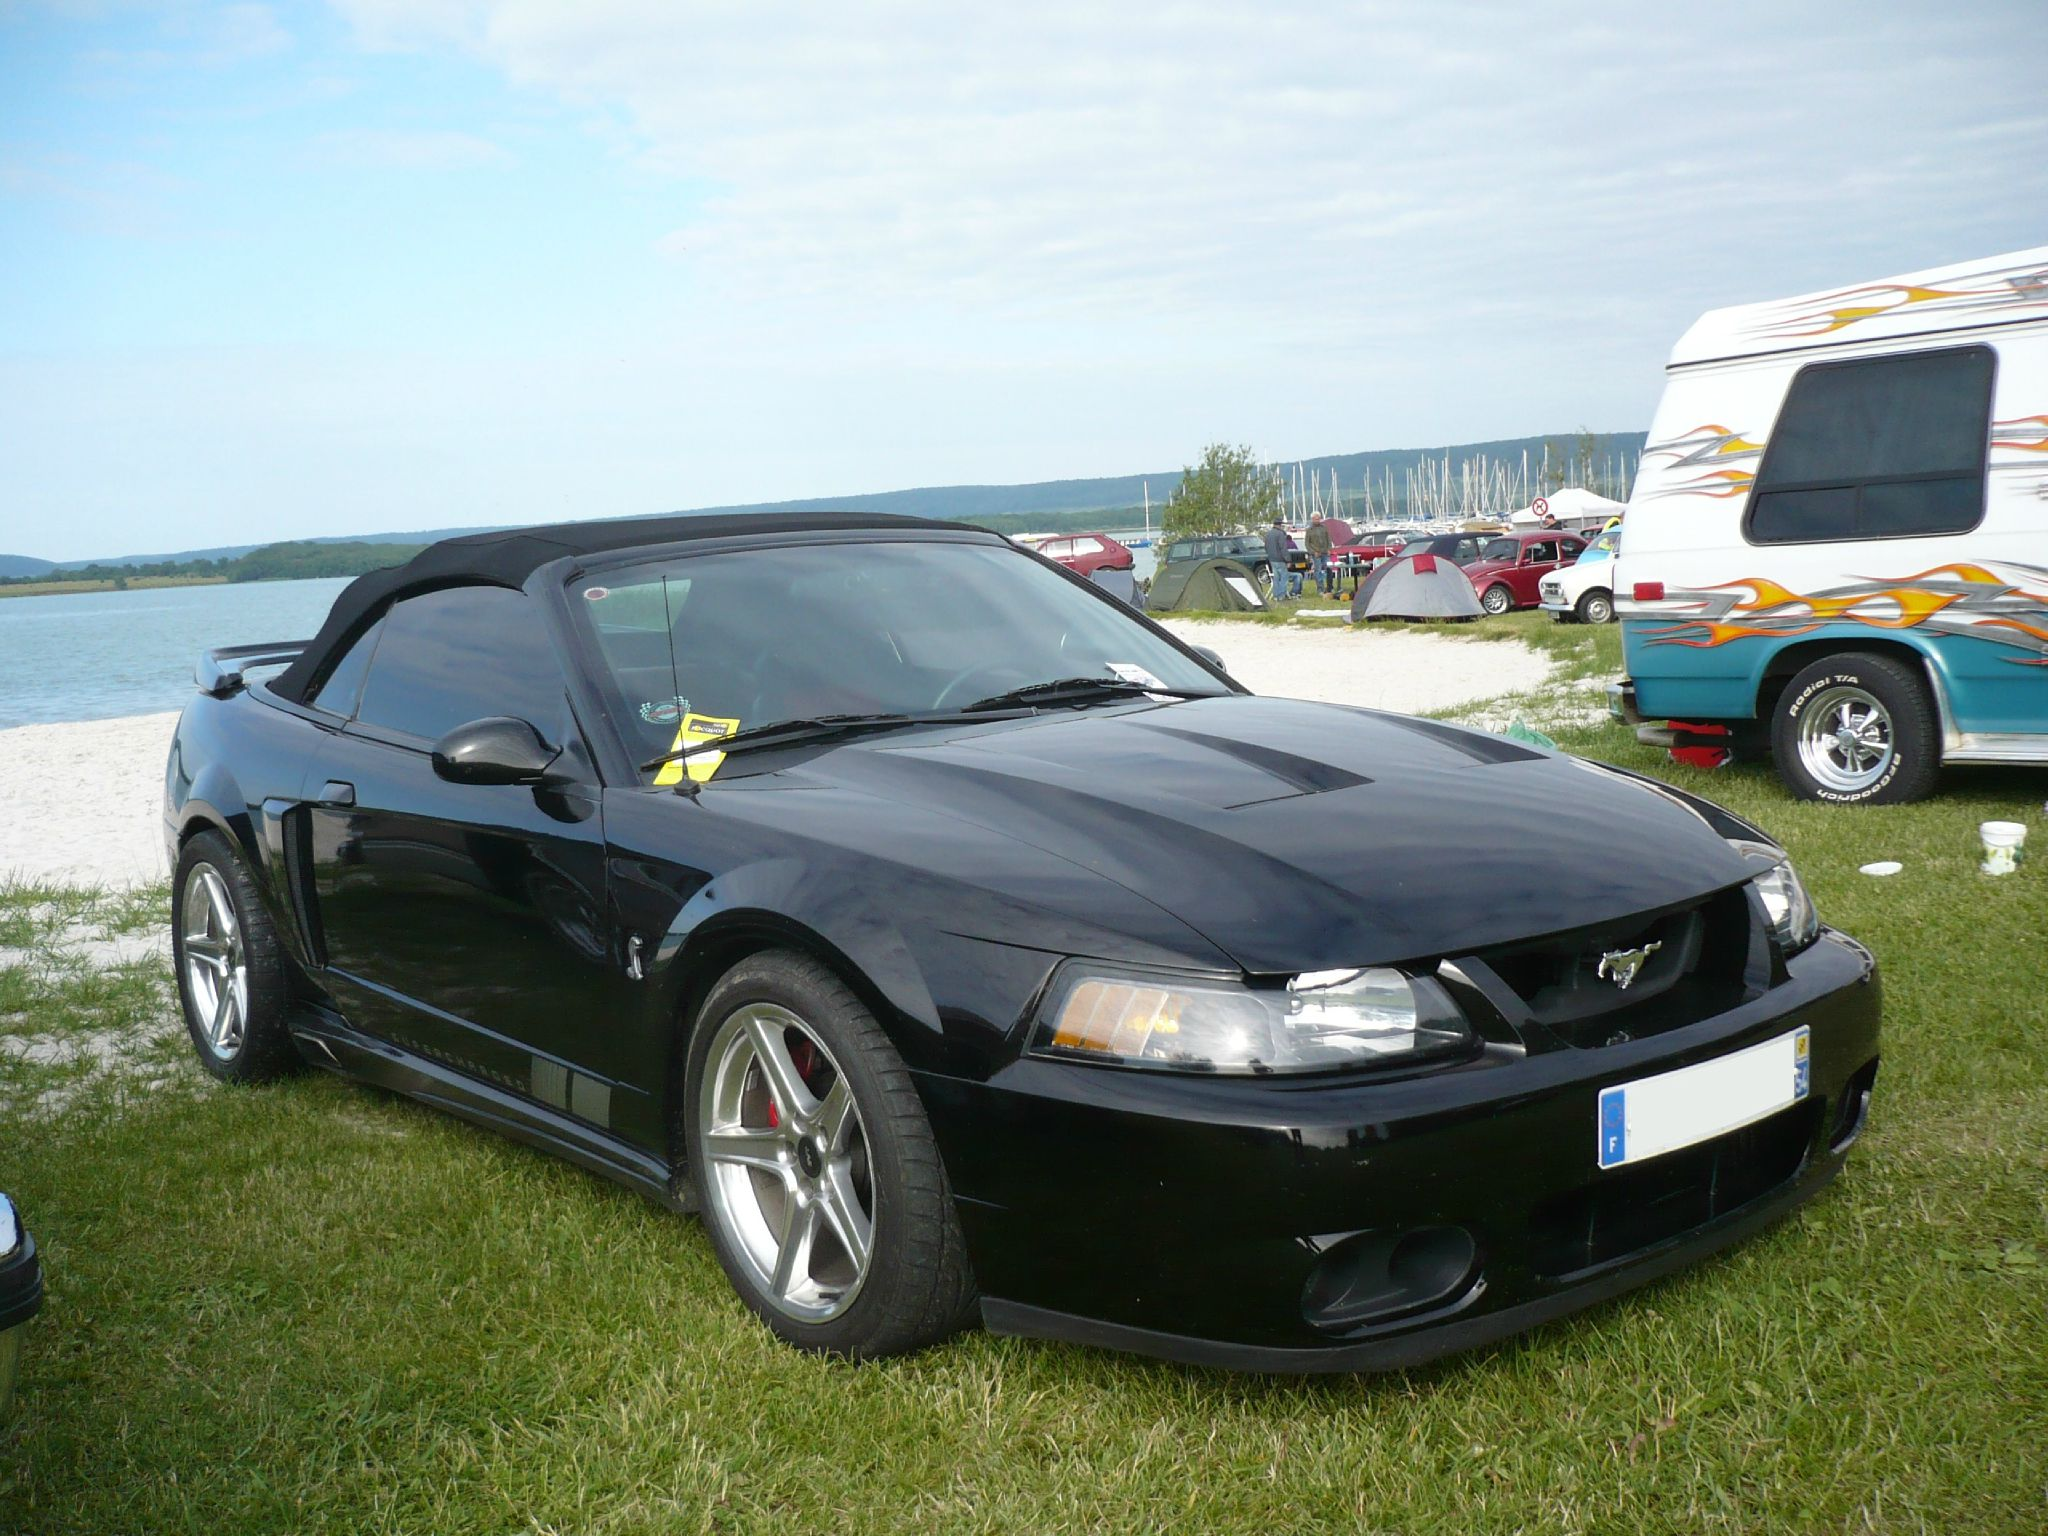 FORD Mustang SVT Cobra Supercharged 2door convertible Madine (1)